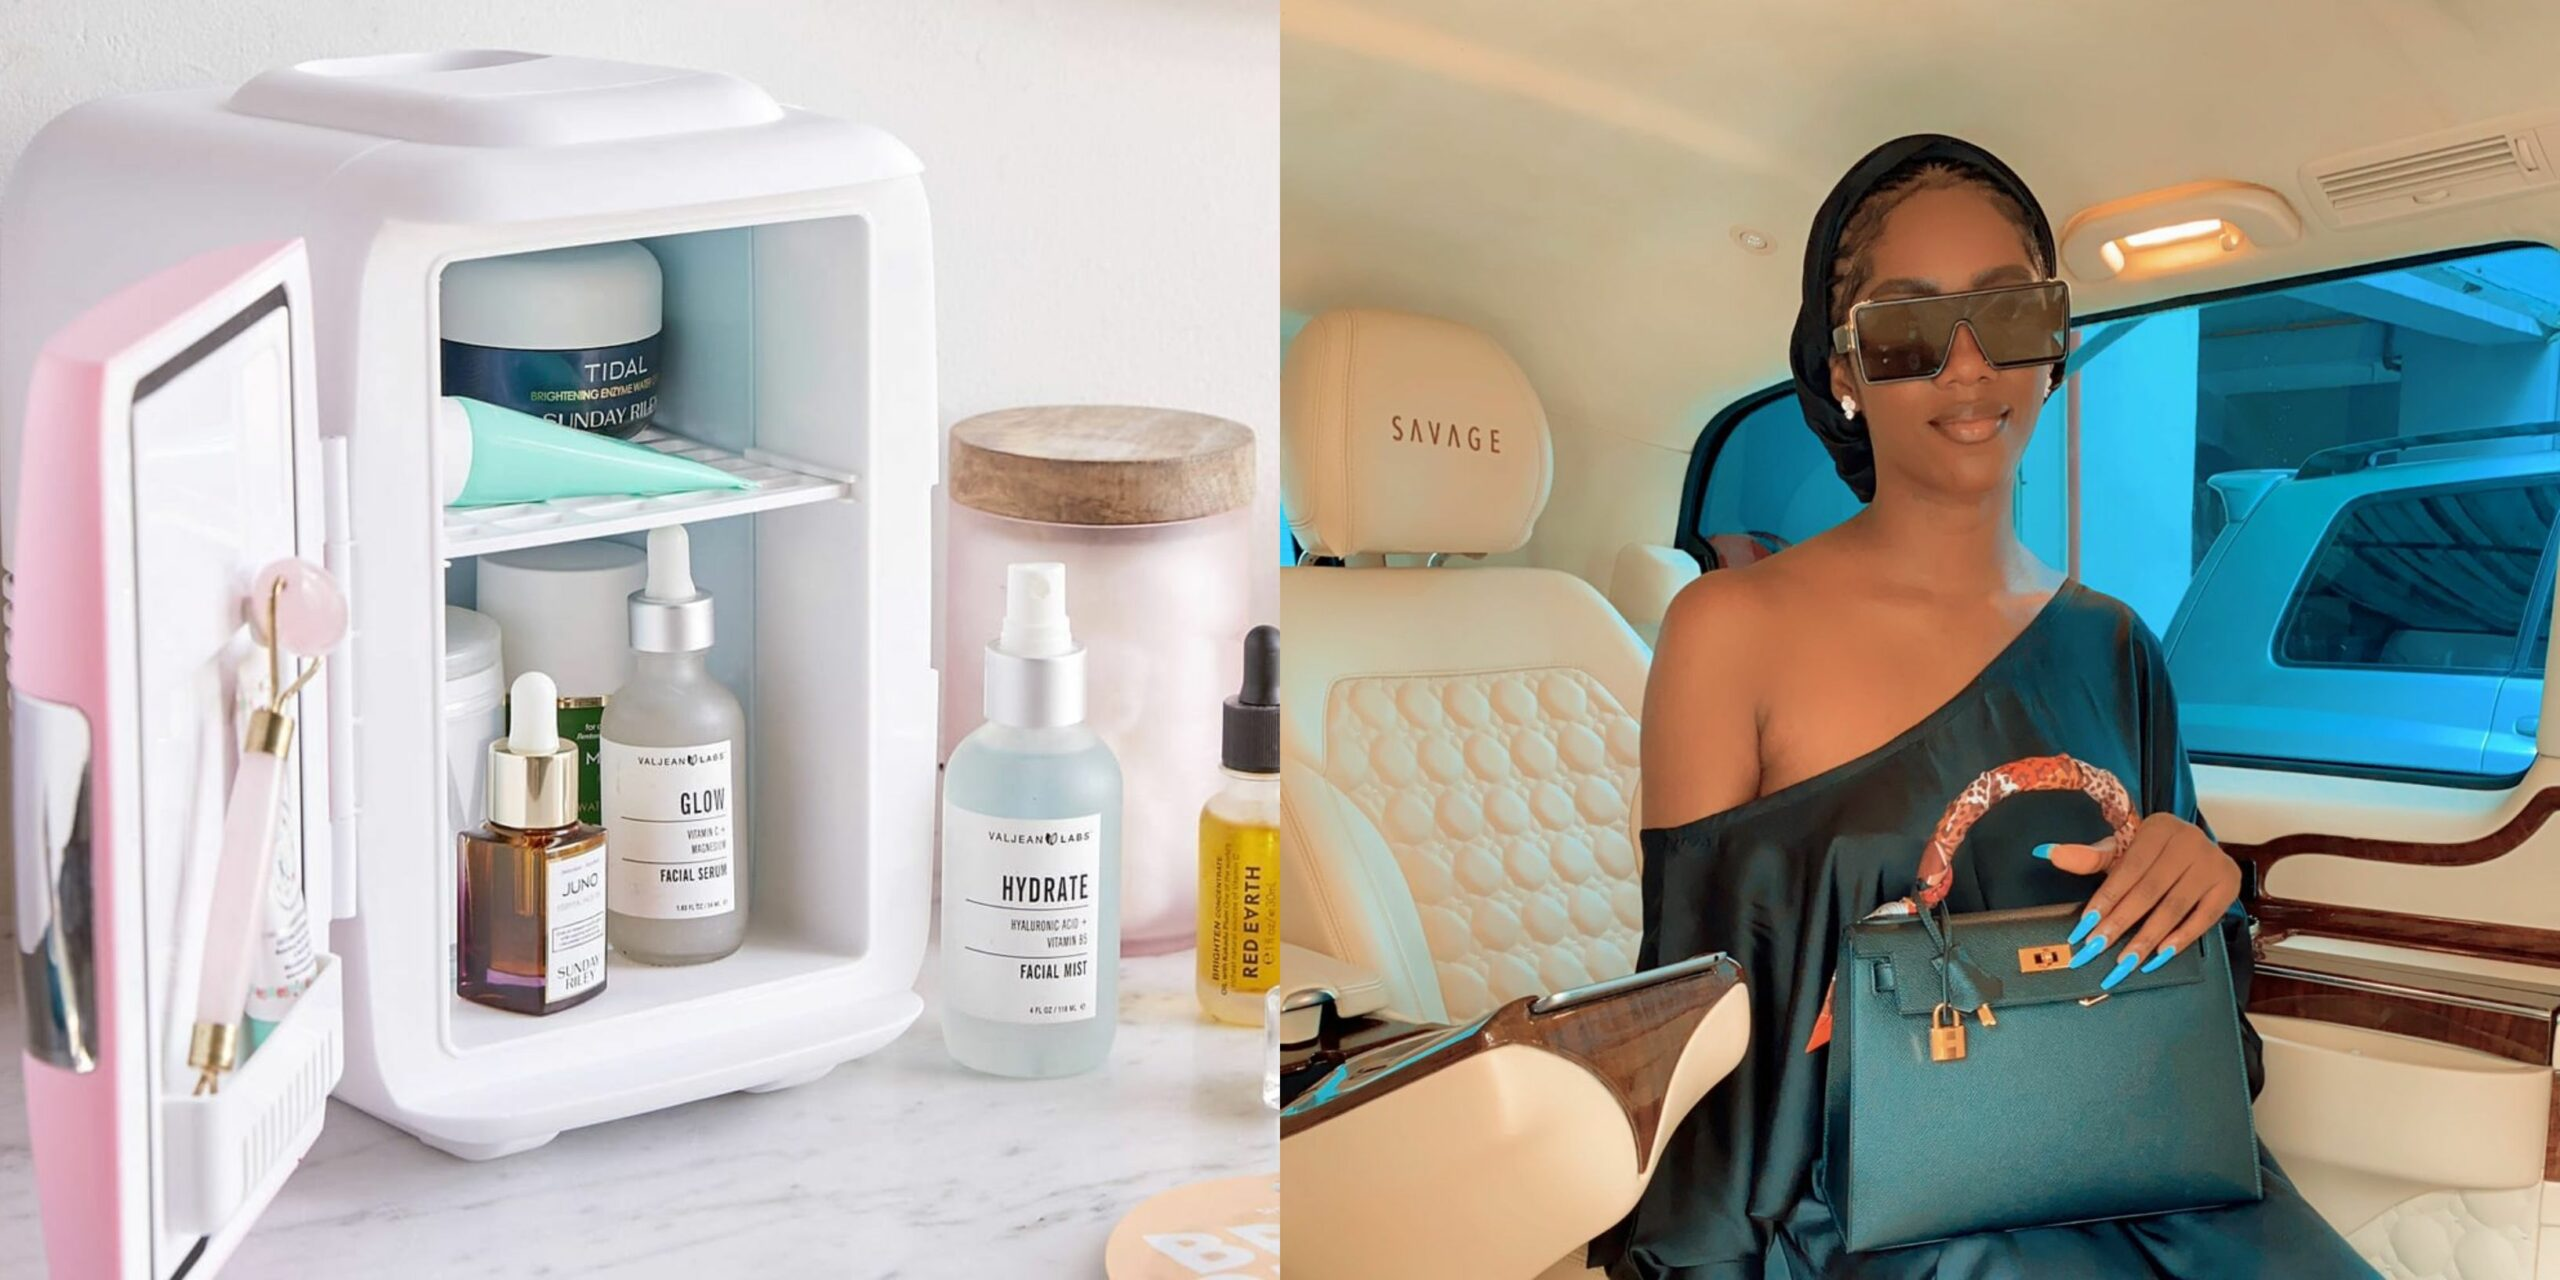 Check out the 'Beauty fridge' where Tiwa Savage keeps all her skin care products (Photos)